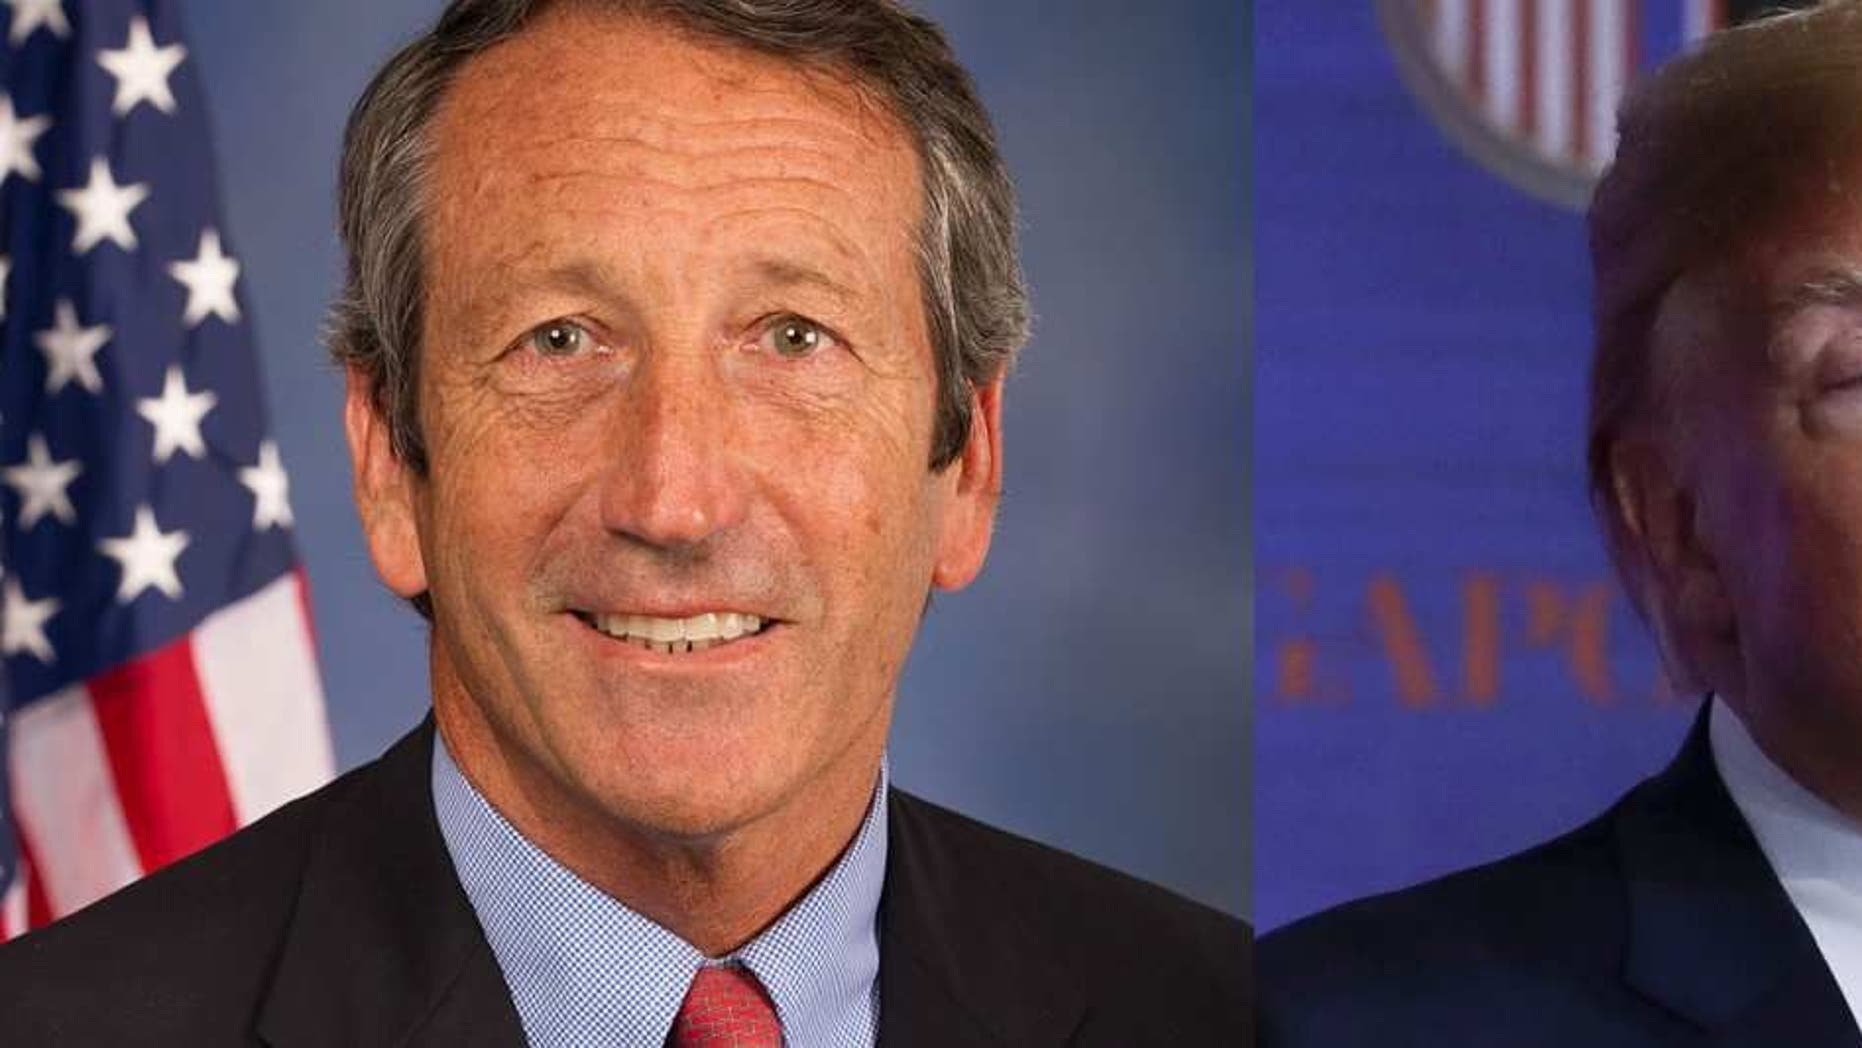 Rep. Mark Sanford, R-S.C./President Donald Trump